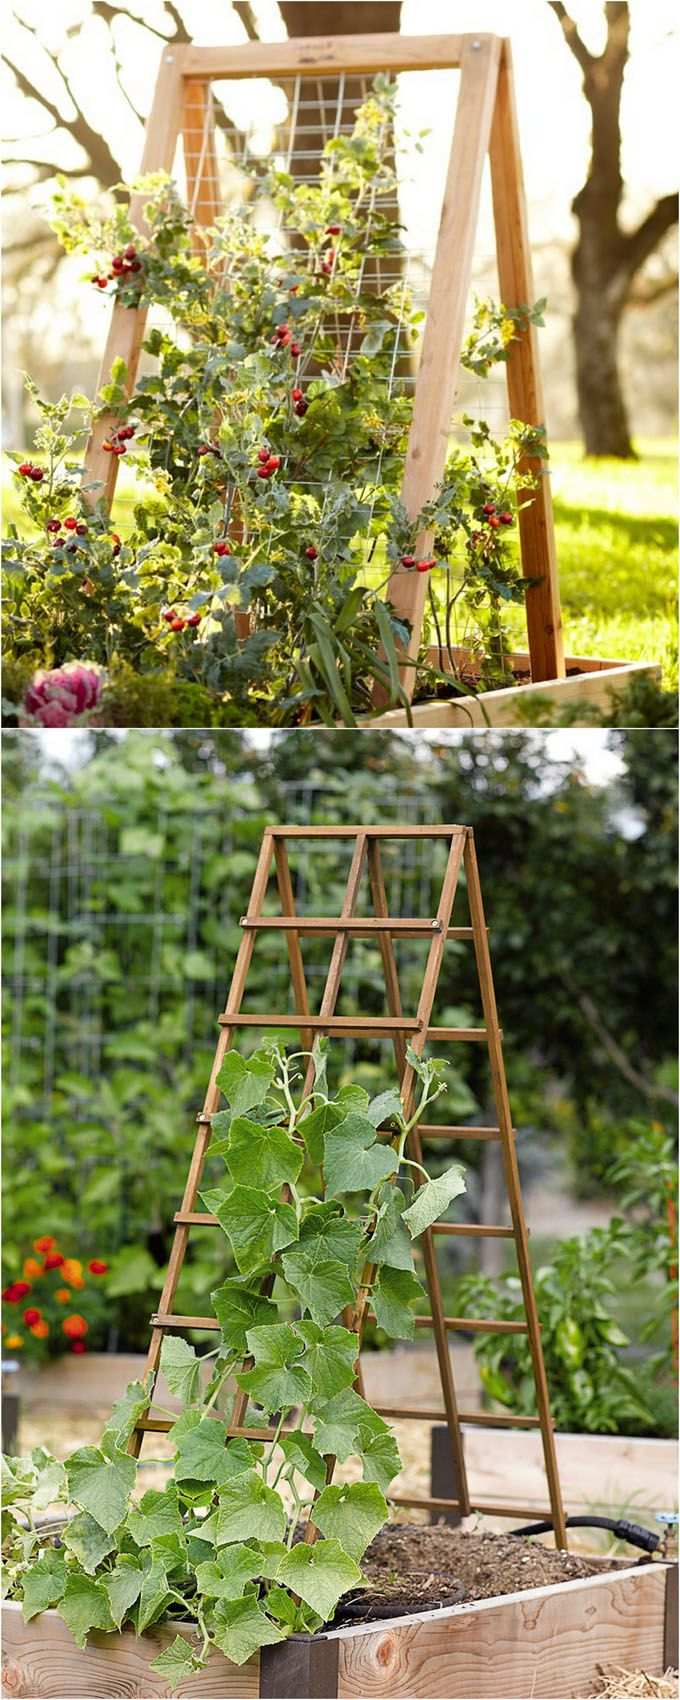 Small Trellis Ideas Part - 48: Create Enchanting Garden Spaces With 21 Beautiful And DIY Friendly Trellis  And Garden Structures, Such · Trellis IdeasDiy TrellisSmall ...